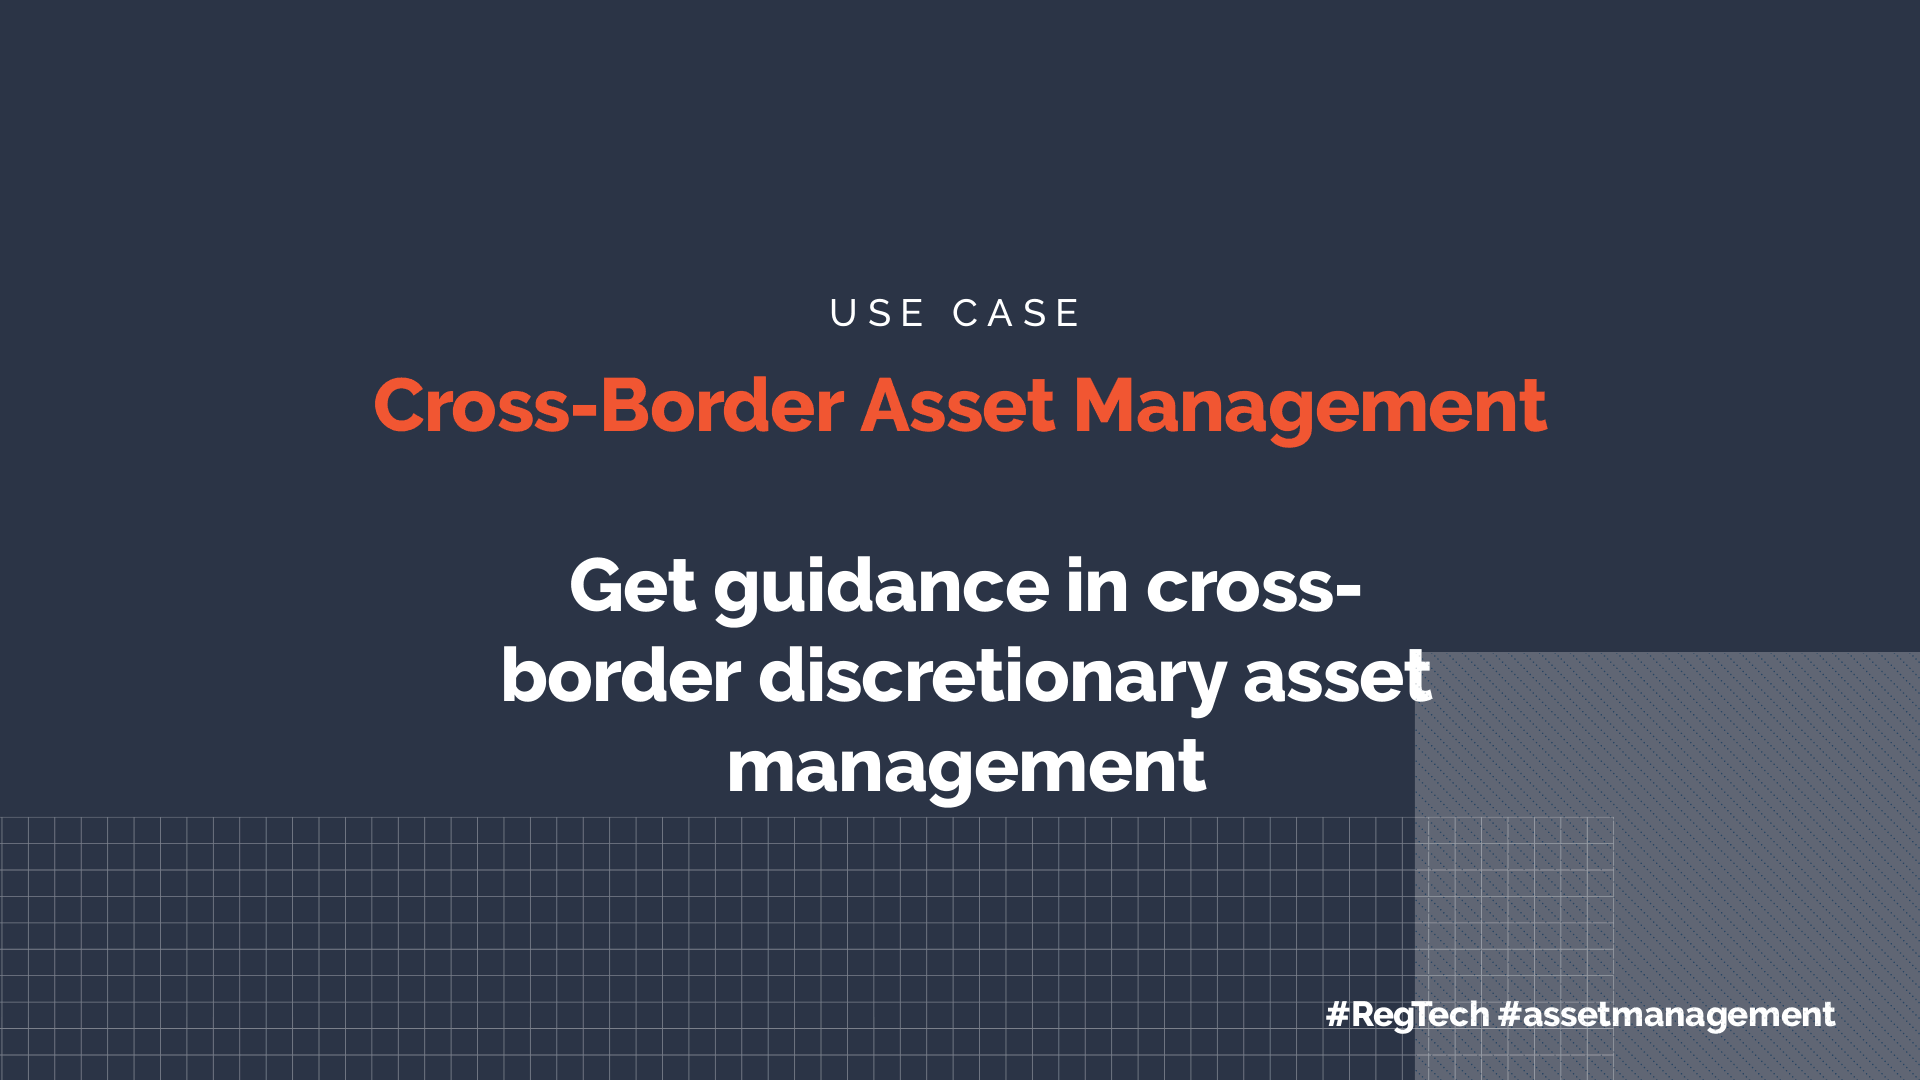 Cross-Border Asset Management